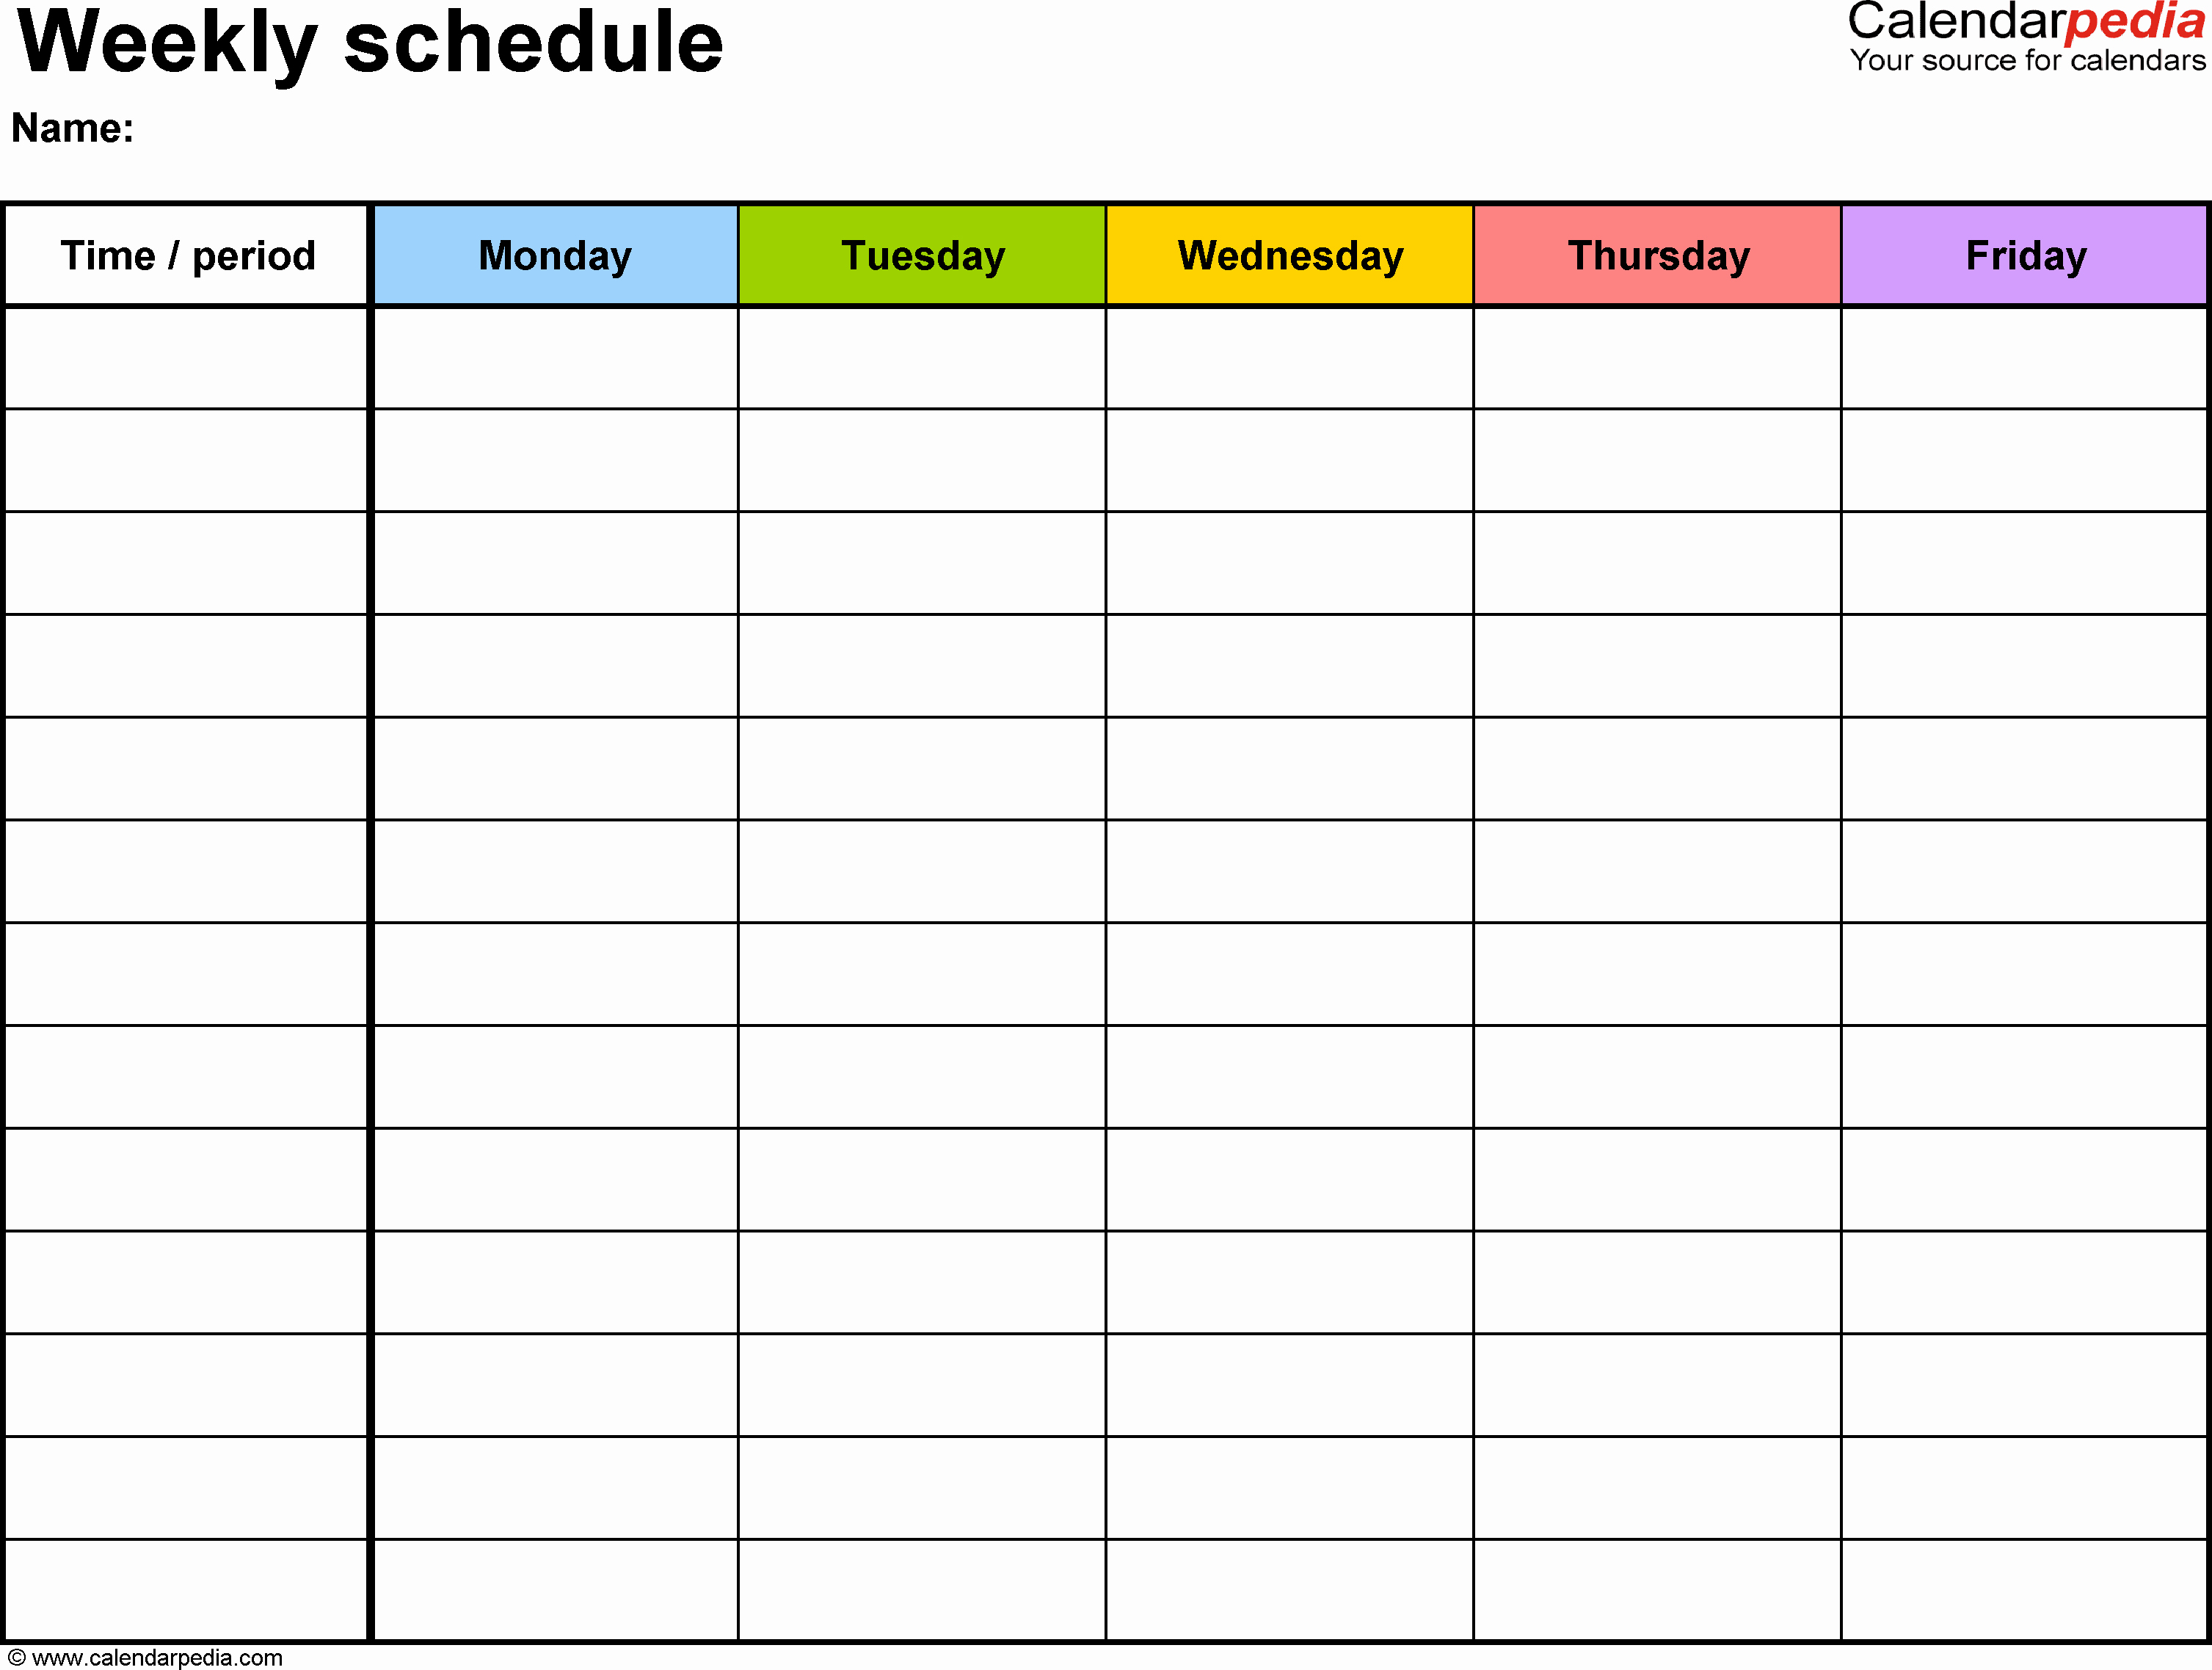 Day to Day Schedule Template Lovely Weekly Schedule Template for Word Version 1 Landscape 1